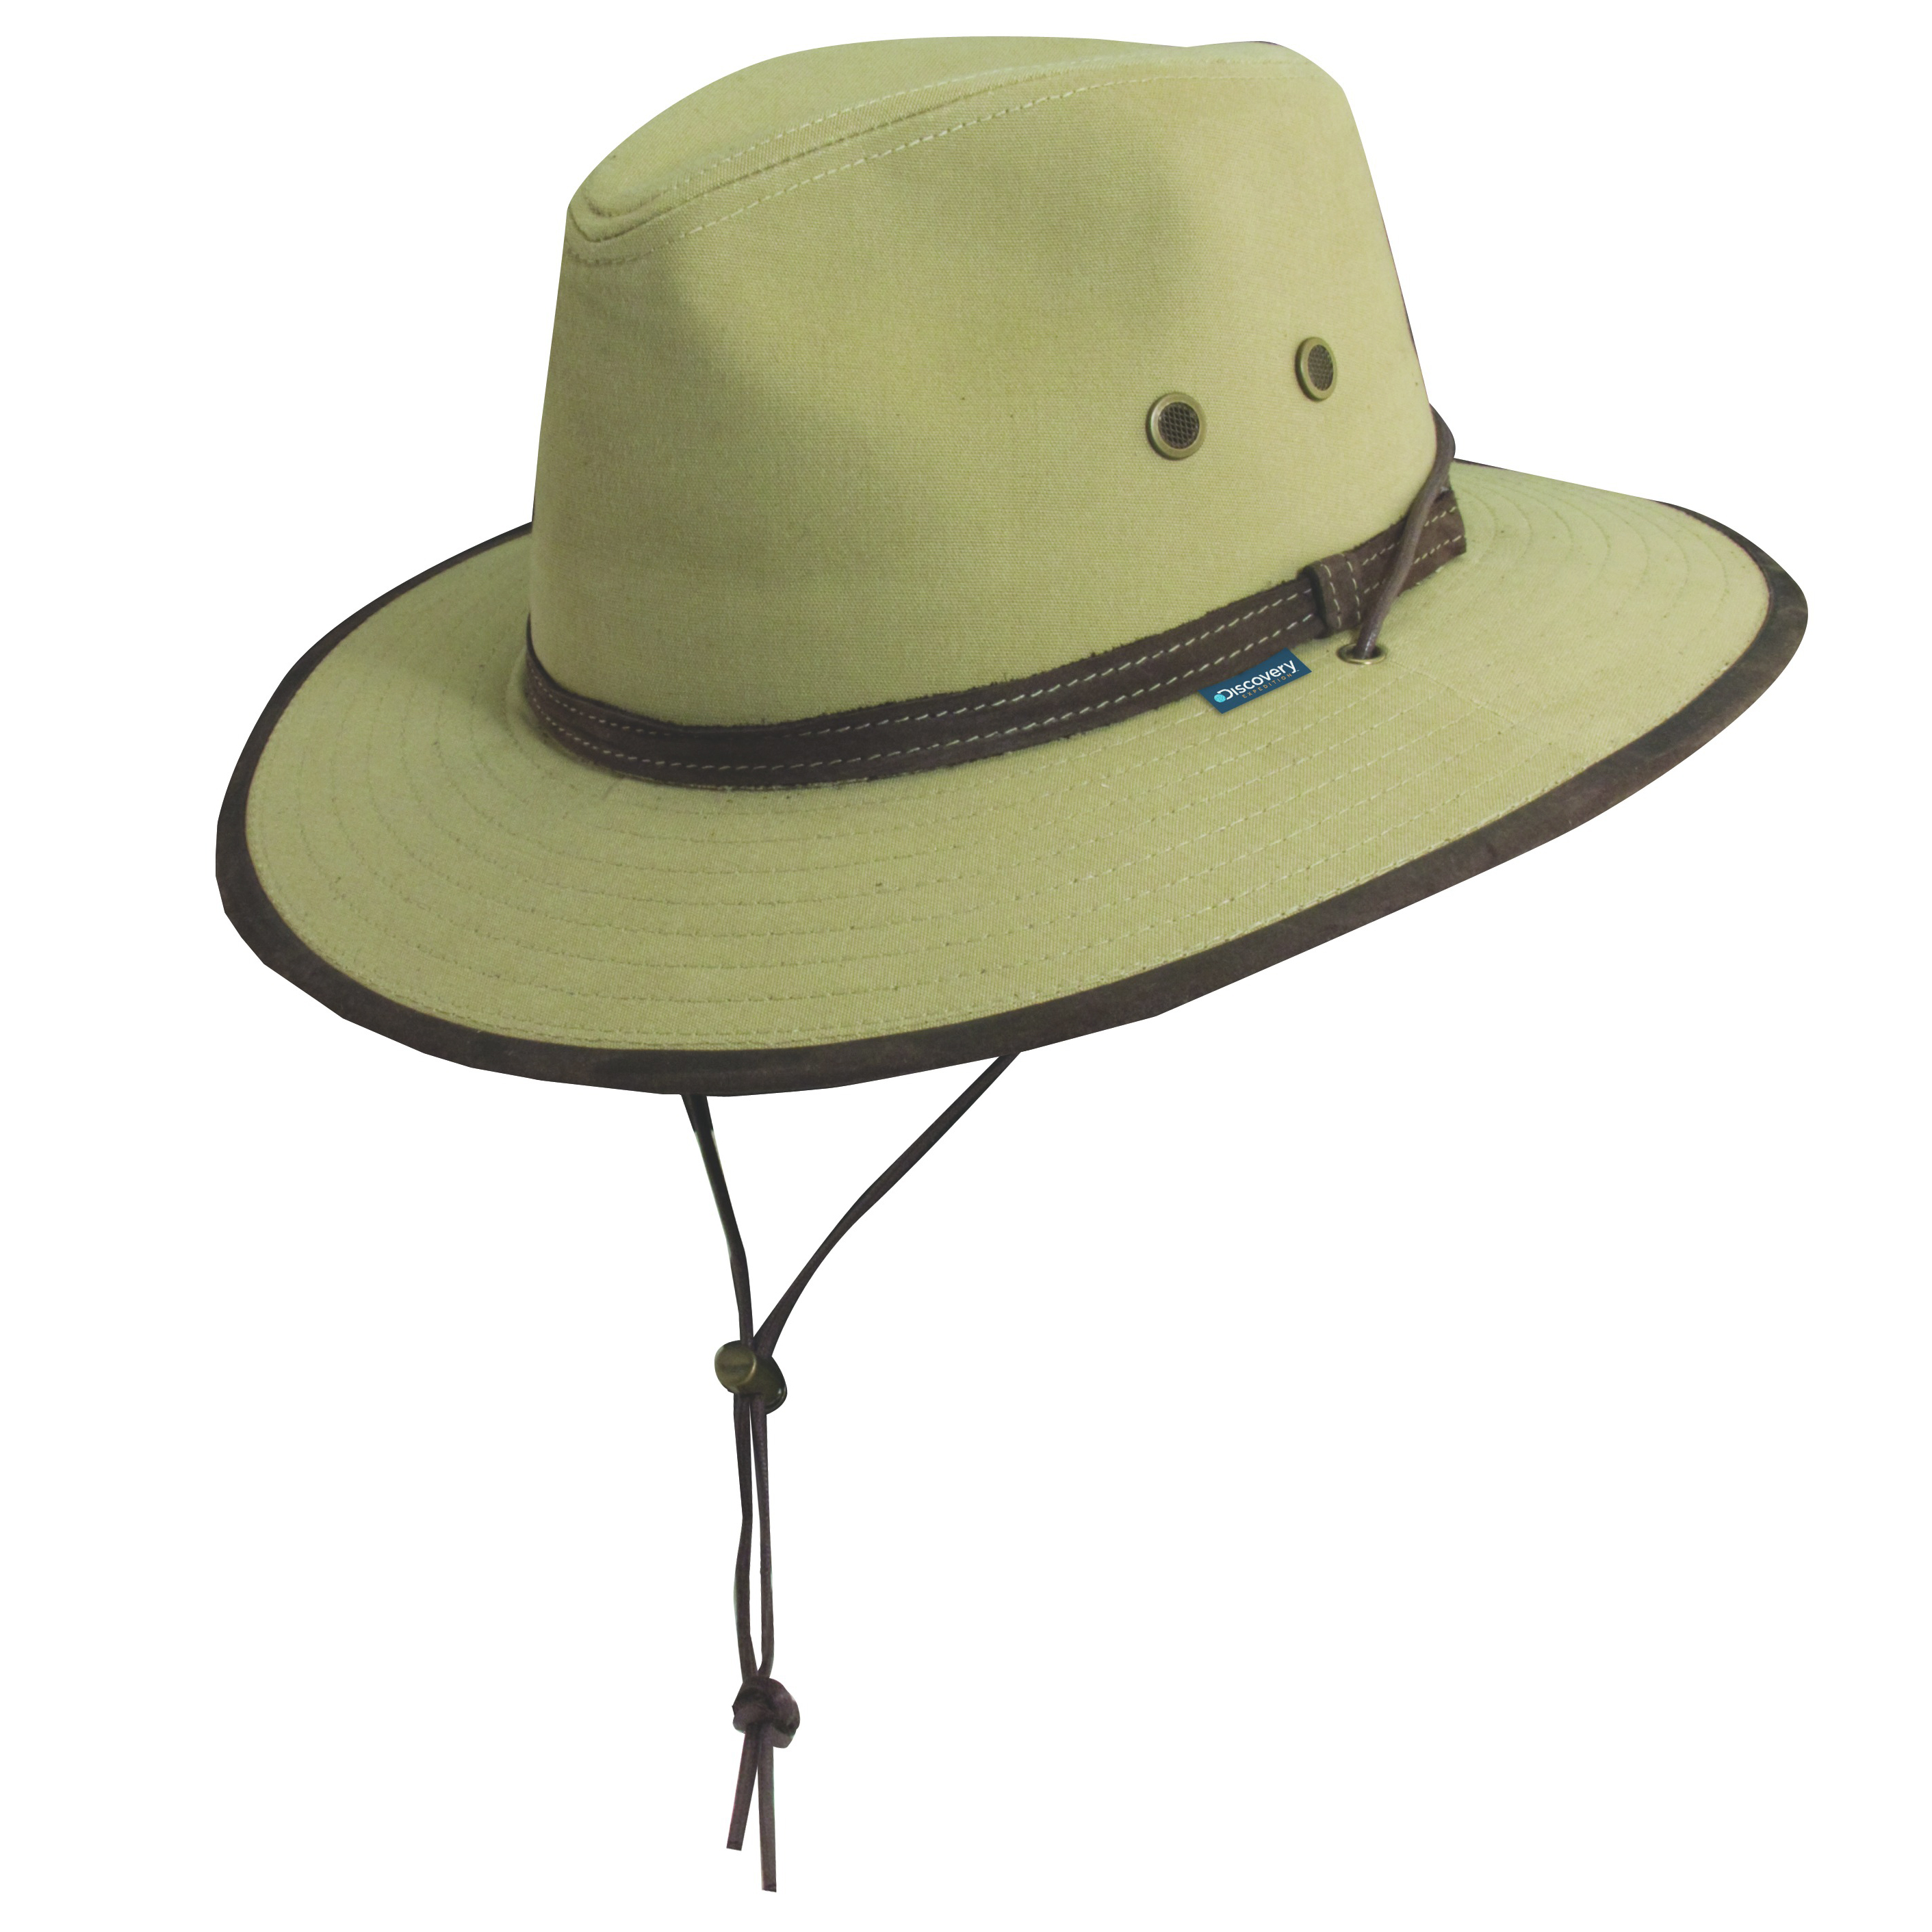 75a44e37003 Camel Discovery Expedition Solarweave Safari Hat